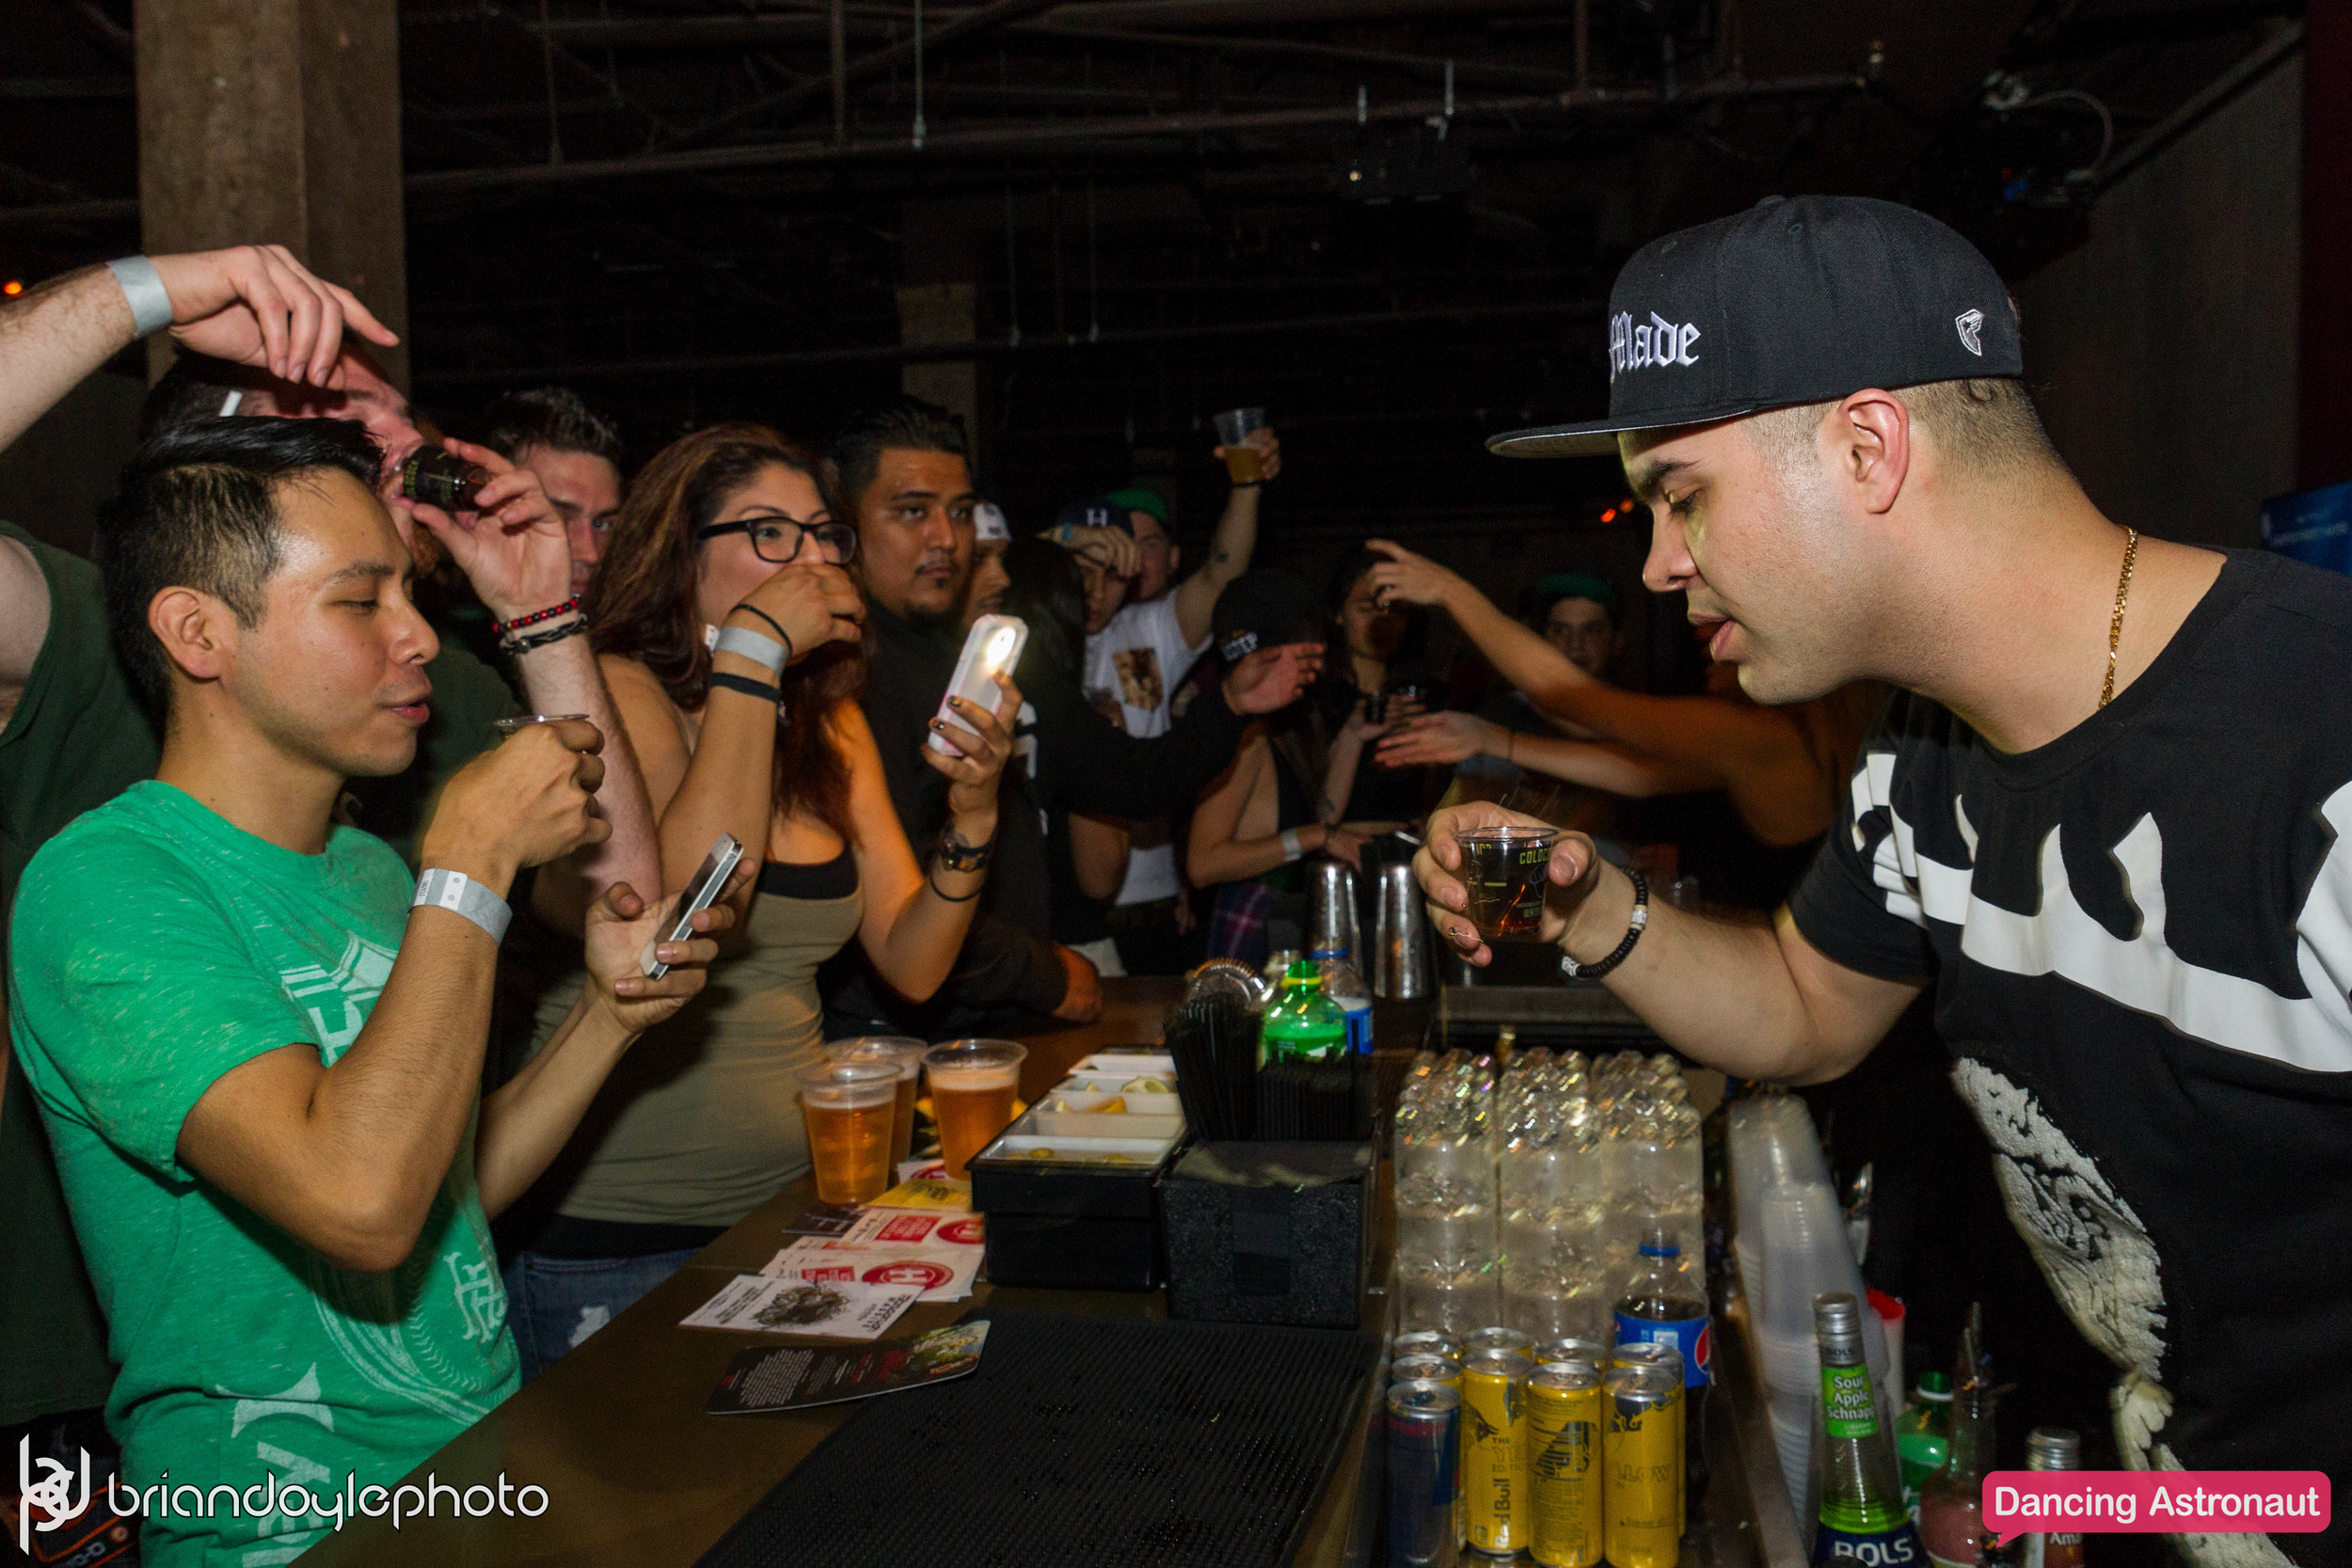 Datsik Ninja Nation Tour at Exchange LA 15.03.2015-4.jpg